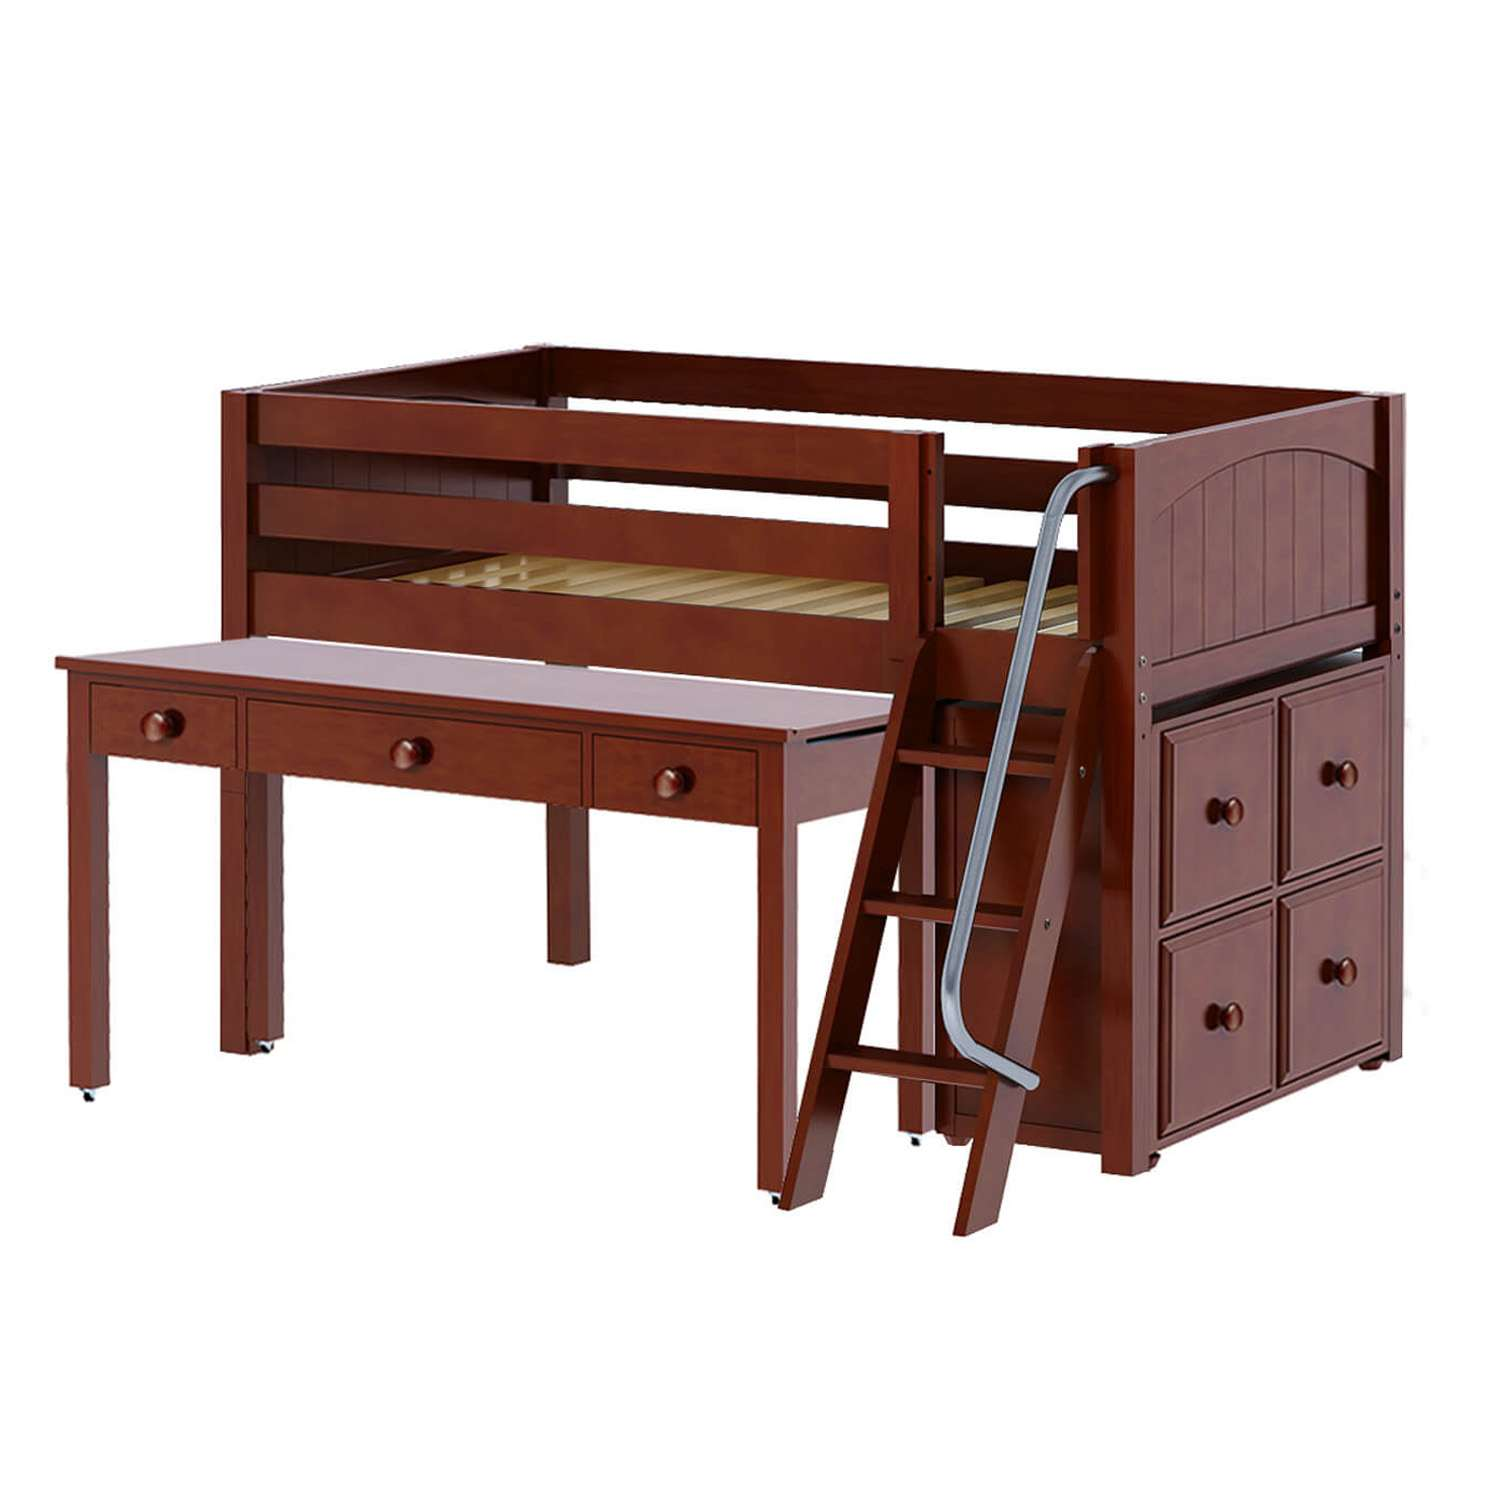 Childrens loft beds CUB KICKS10 CP XAM